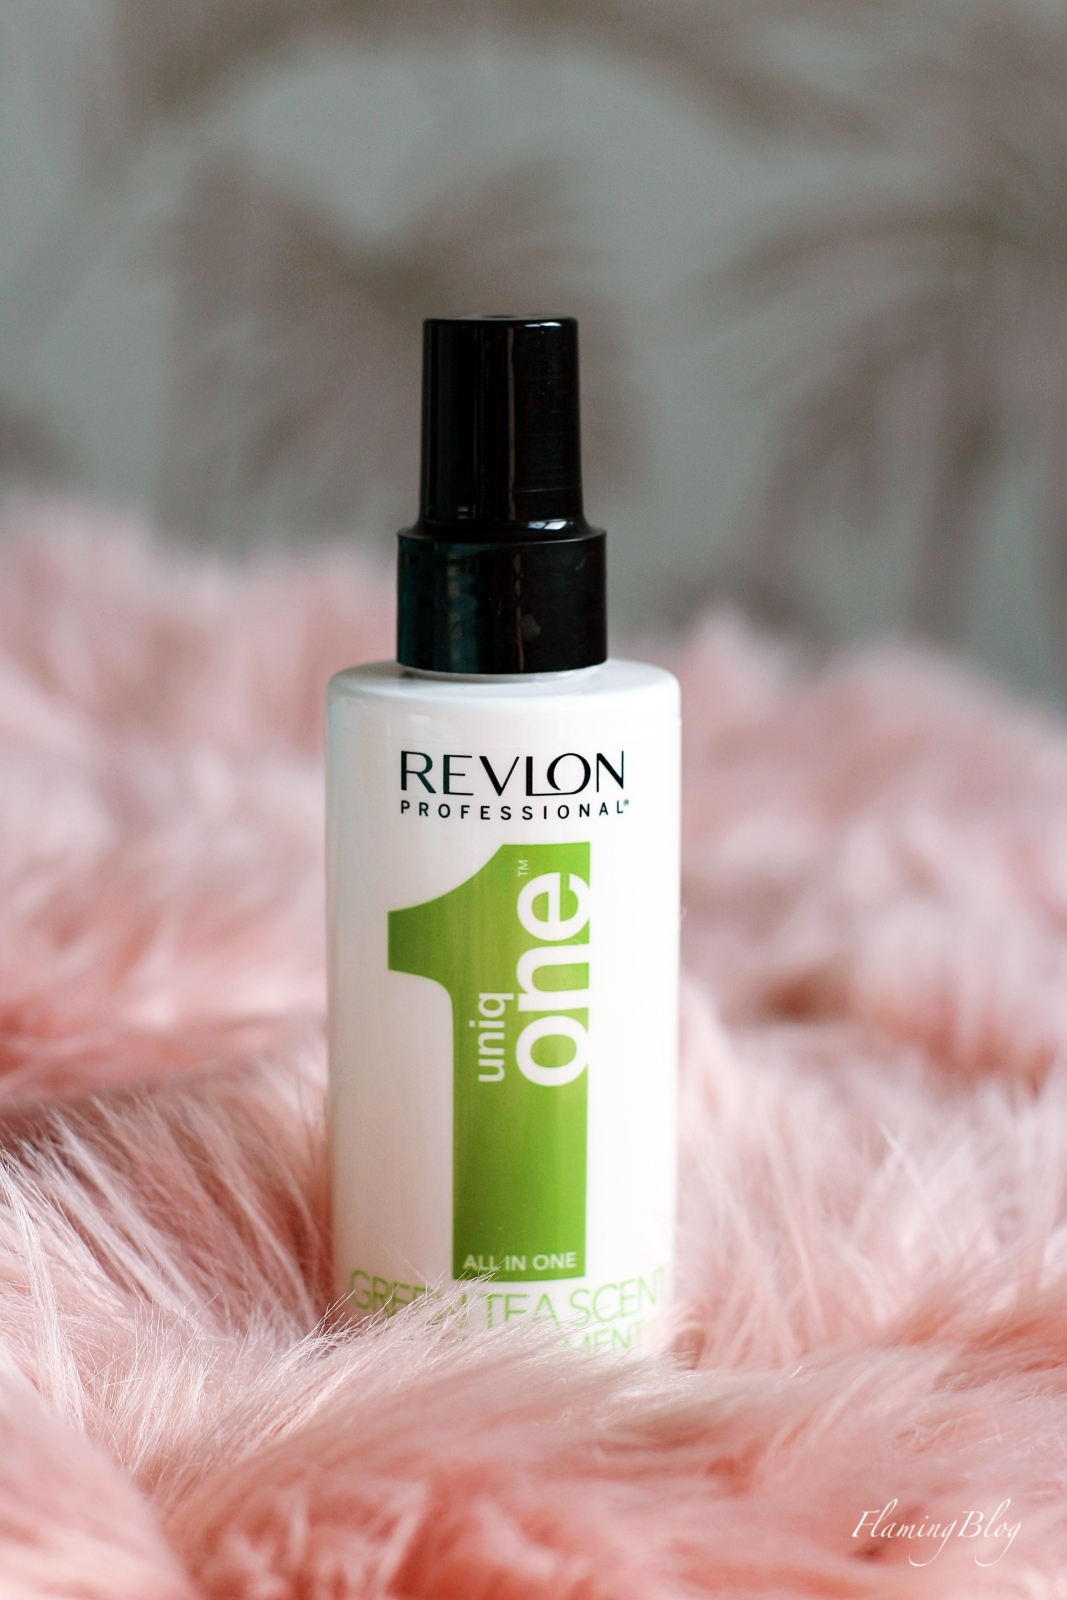 Revlon Professional Uniq One 1 Green Tea Hair Treatment opinie recenzja